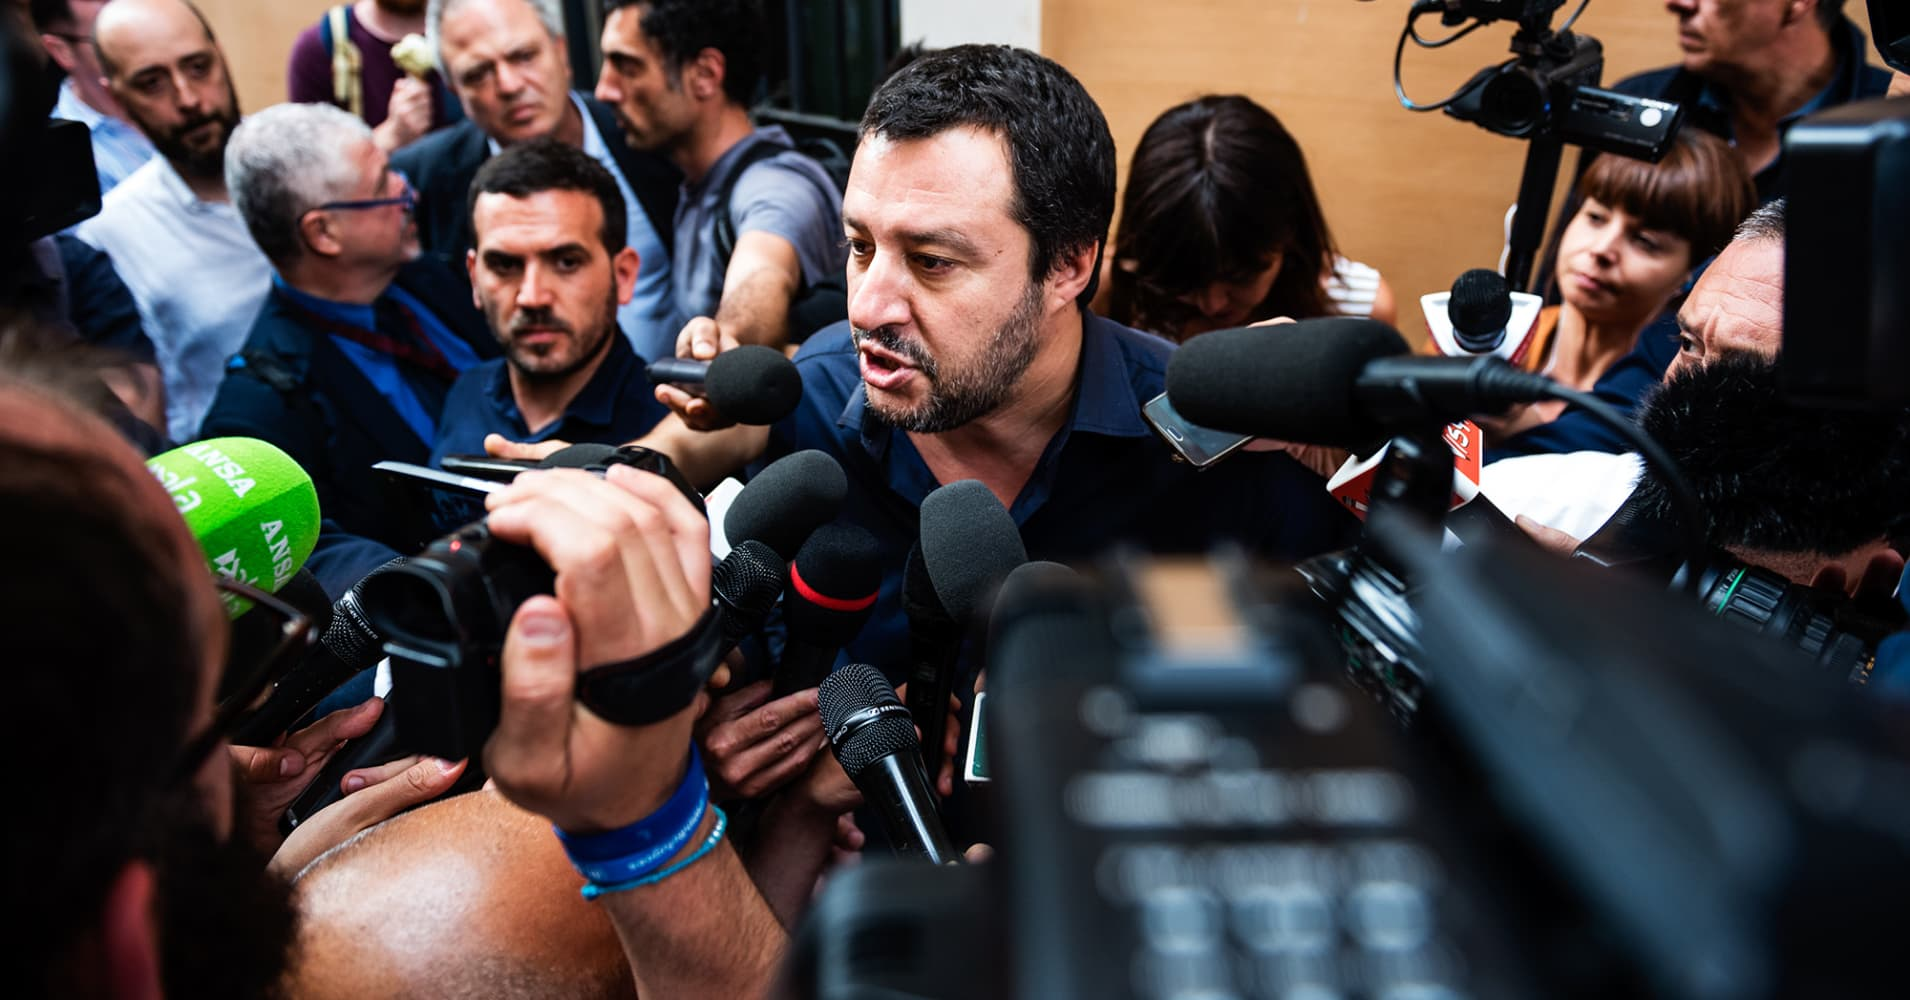 Lega leader's call for fresh election takes gloss off Italian recovery